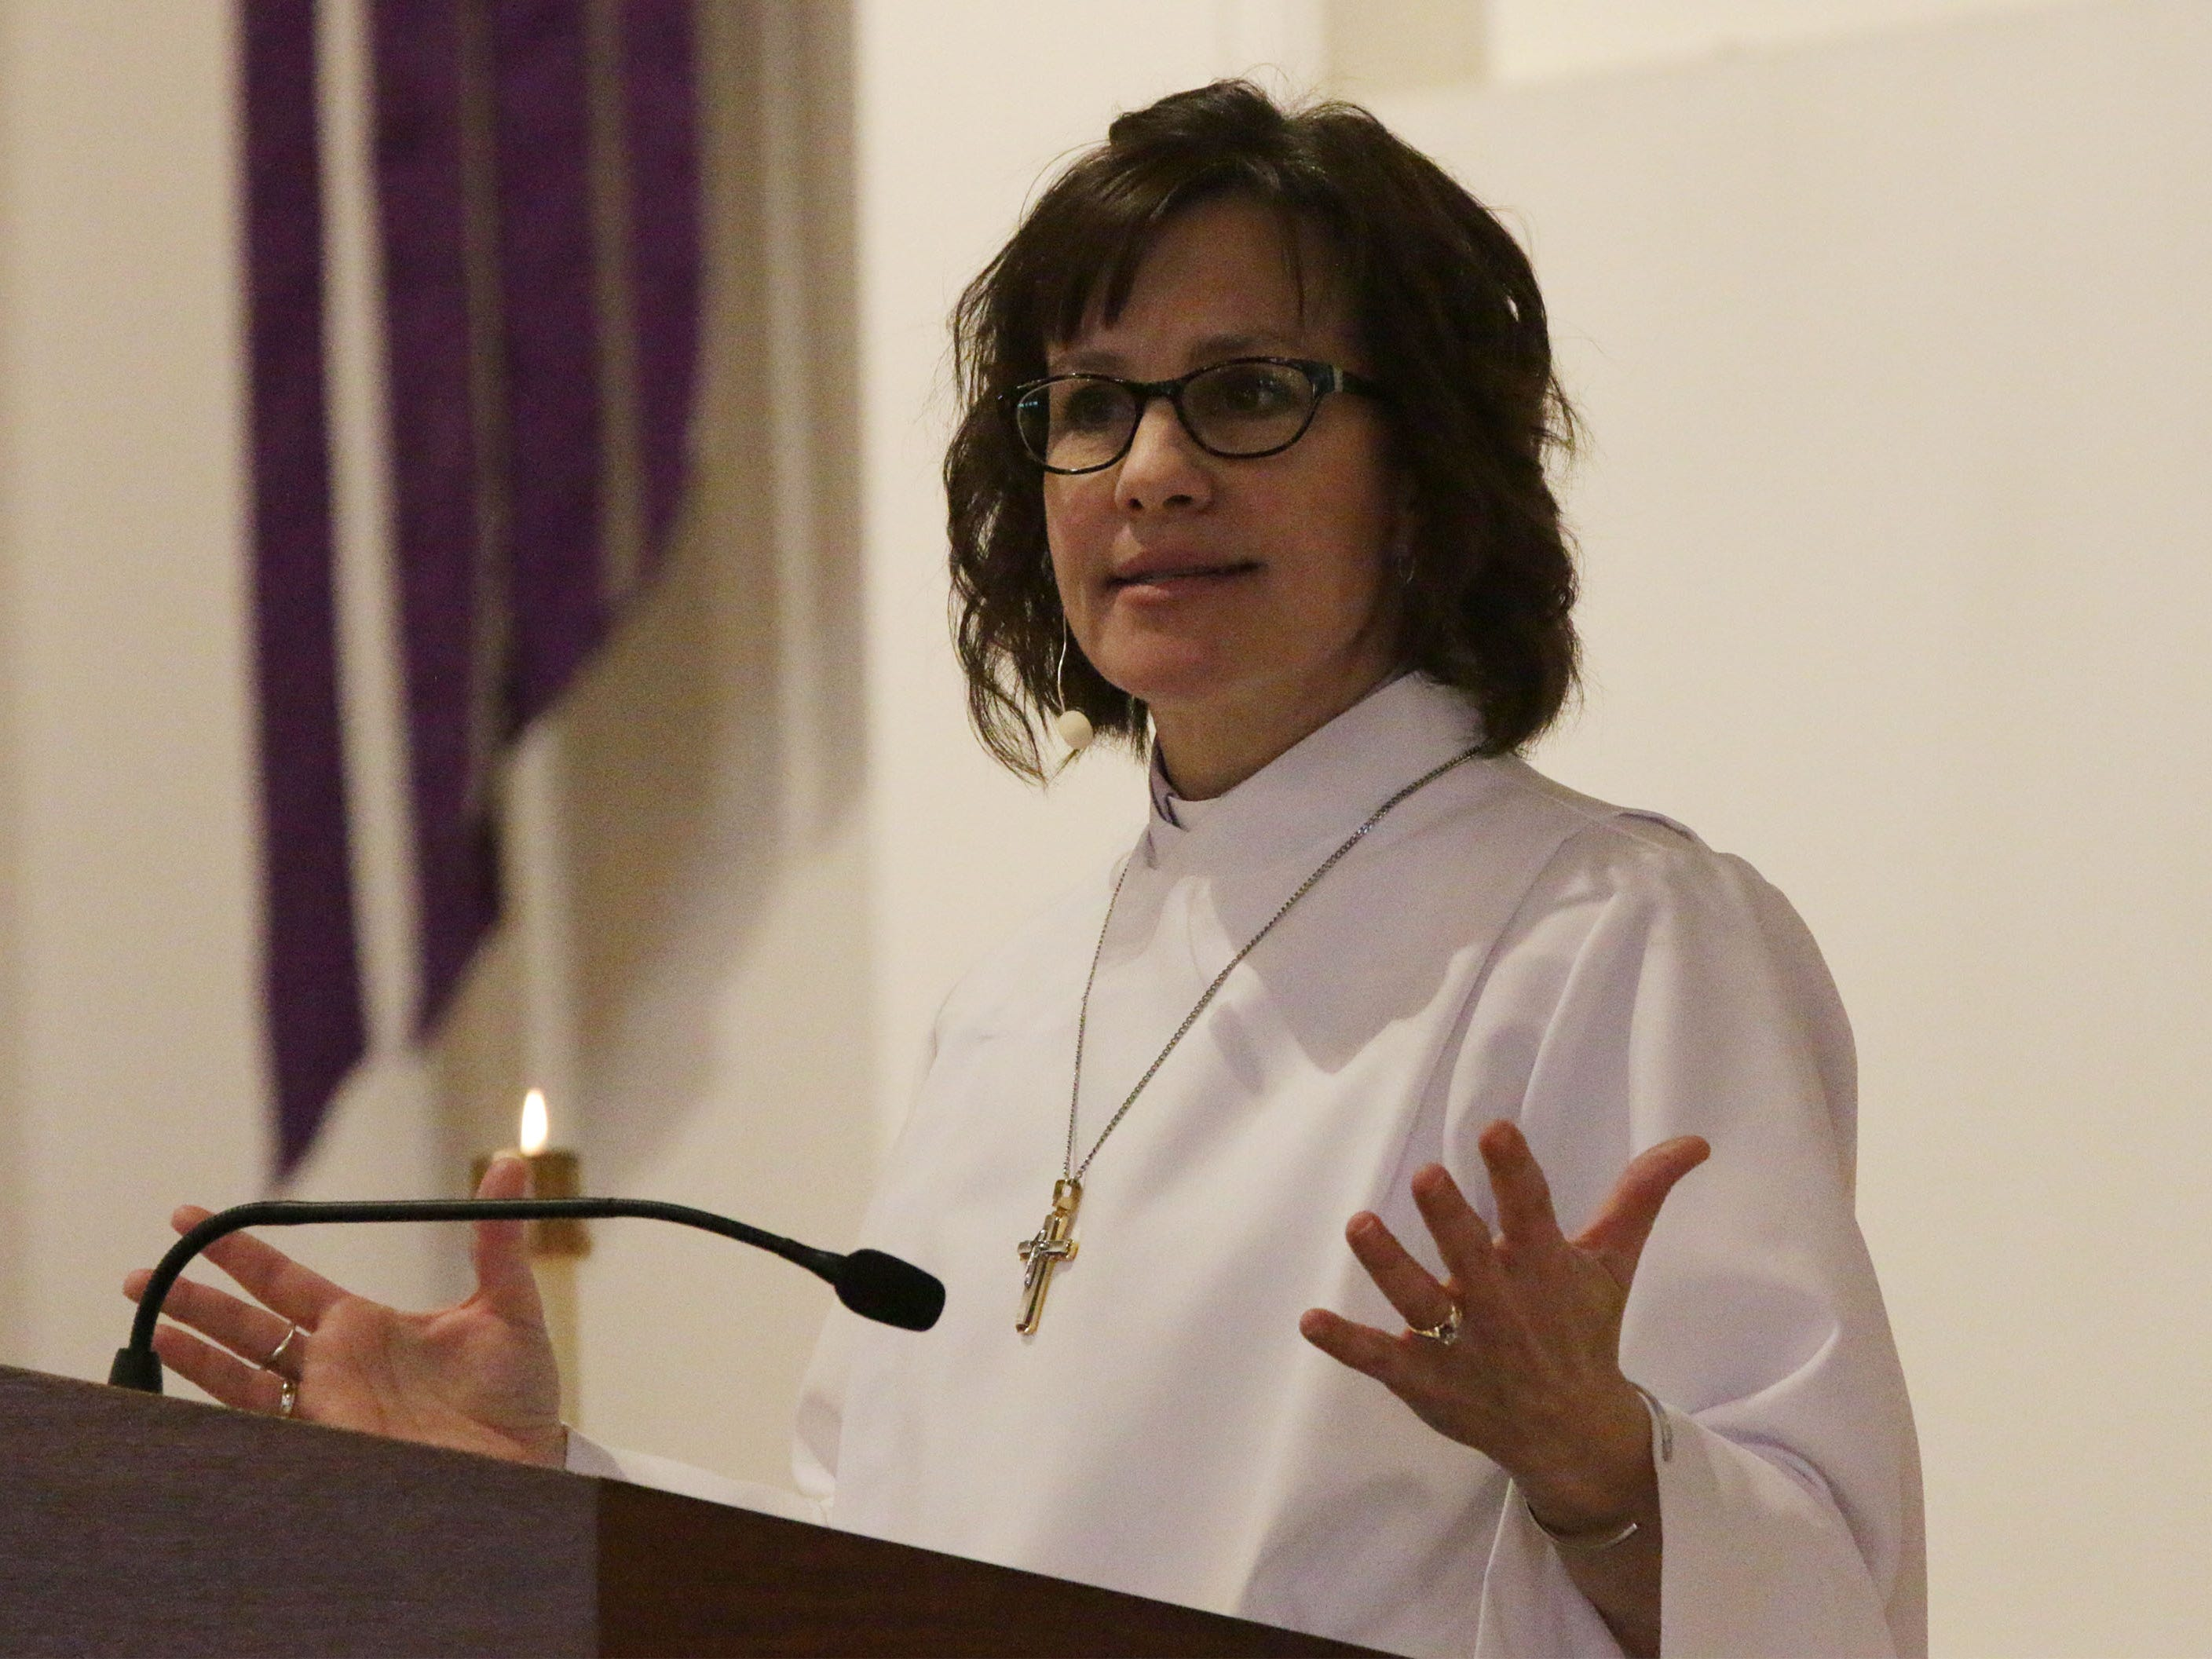 Pastoral intern Tina Kieckhafer gives the message during Ash Wednesday service at First United Lutheran Church, Wednesday, March 6, 2019, in Sheboygan, Wis.